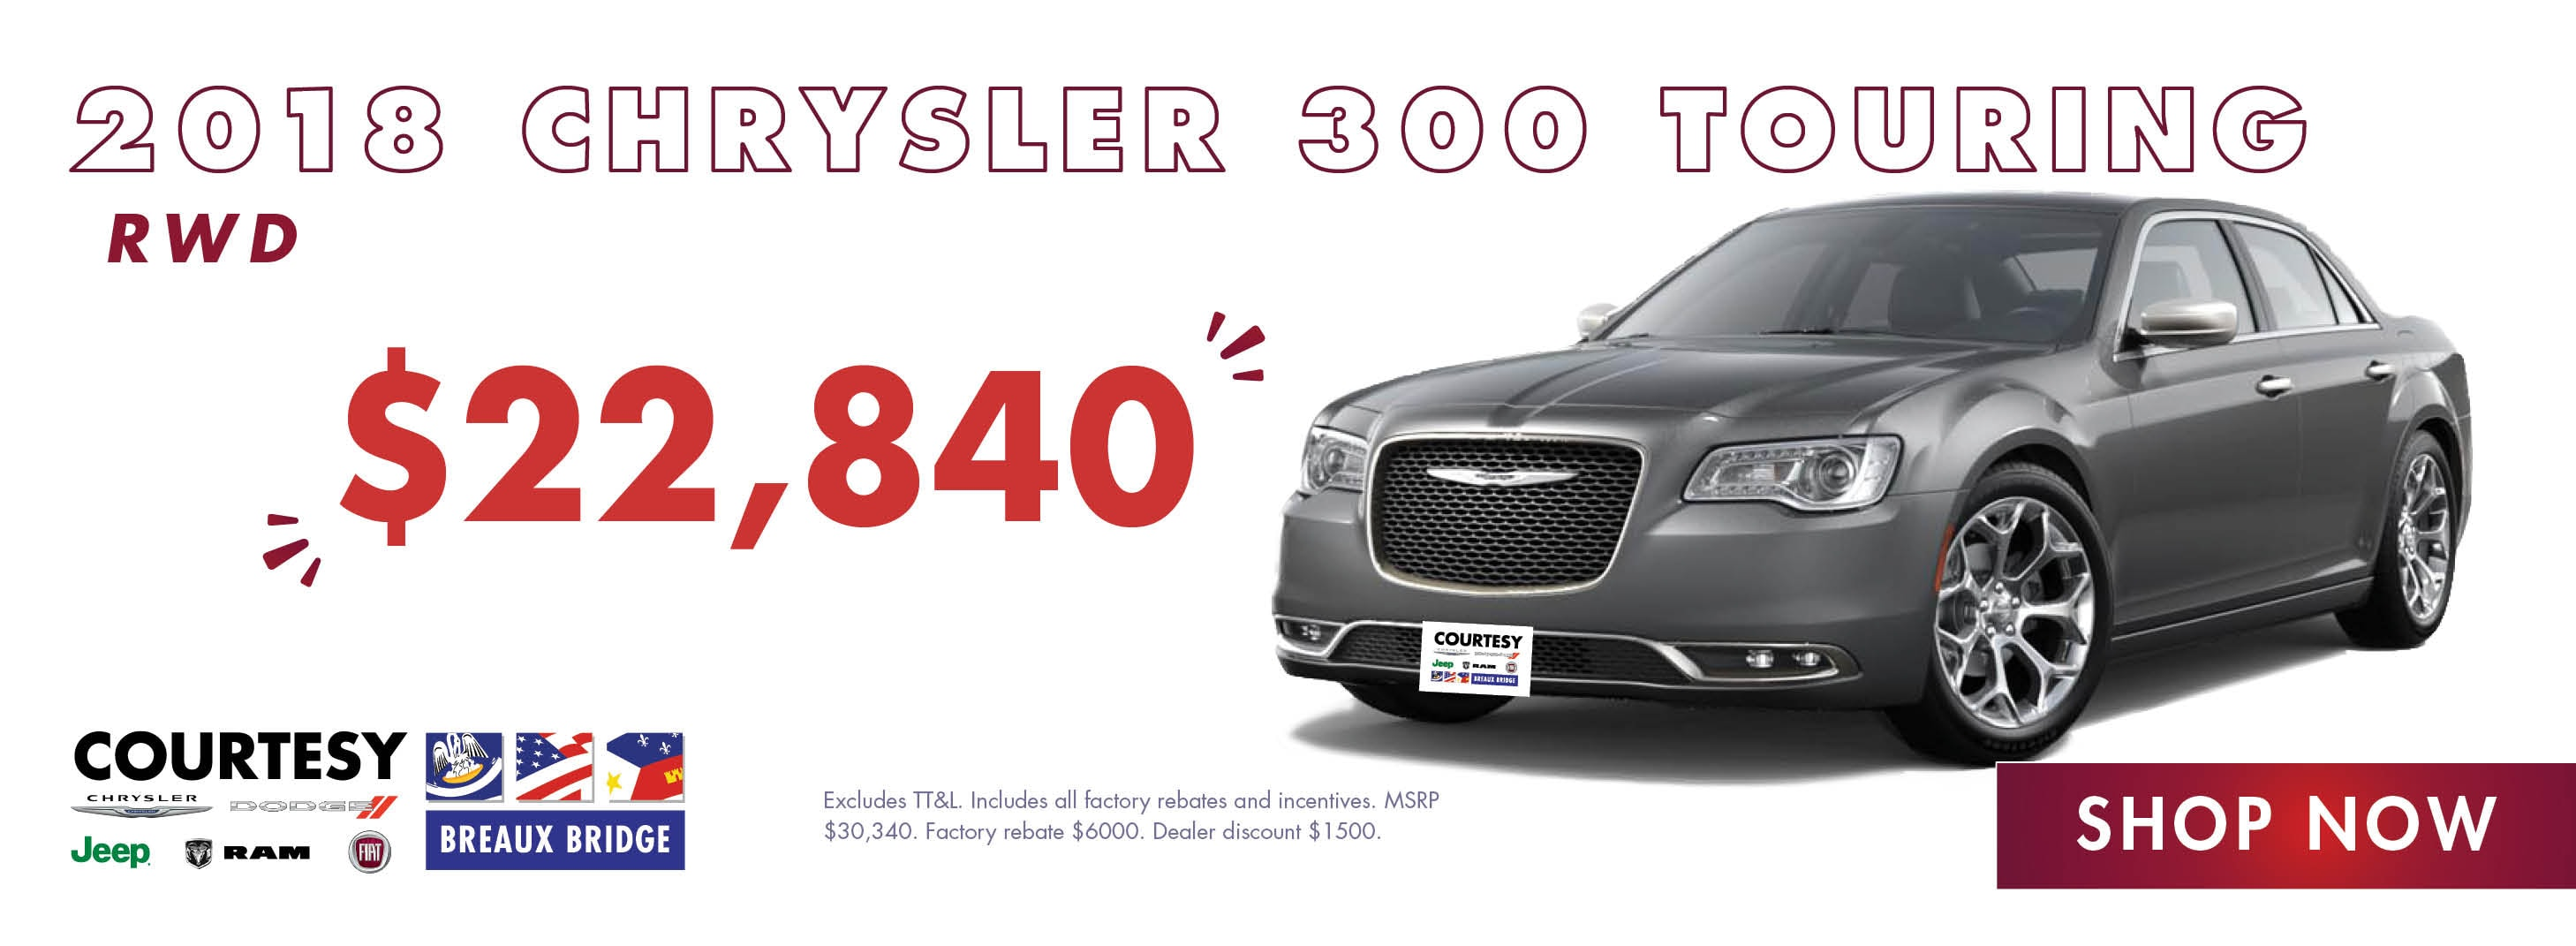 Jeep Dealership Baton Rouge >> Courtesy Chrysler Dodge Jeep RAM FIAT | Breaux Bridge, LA ...